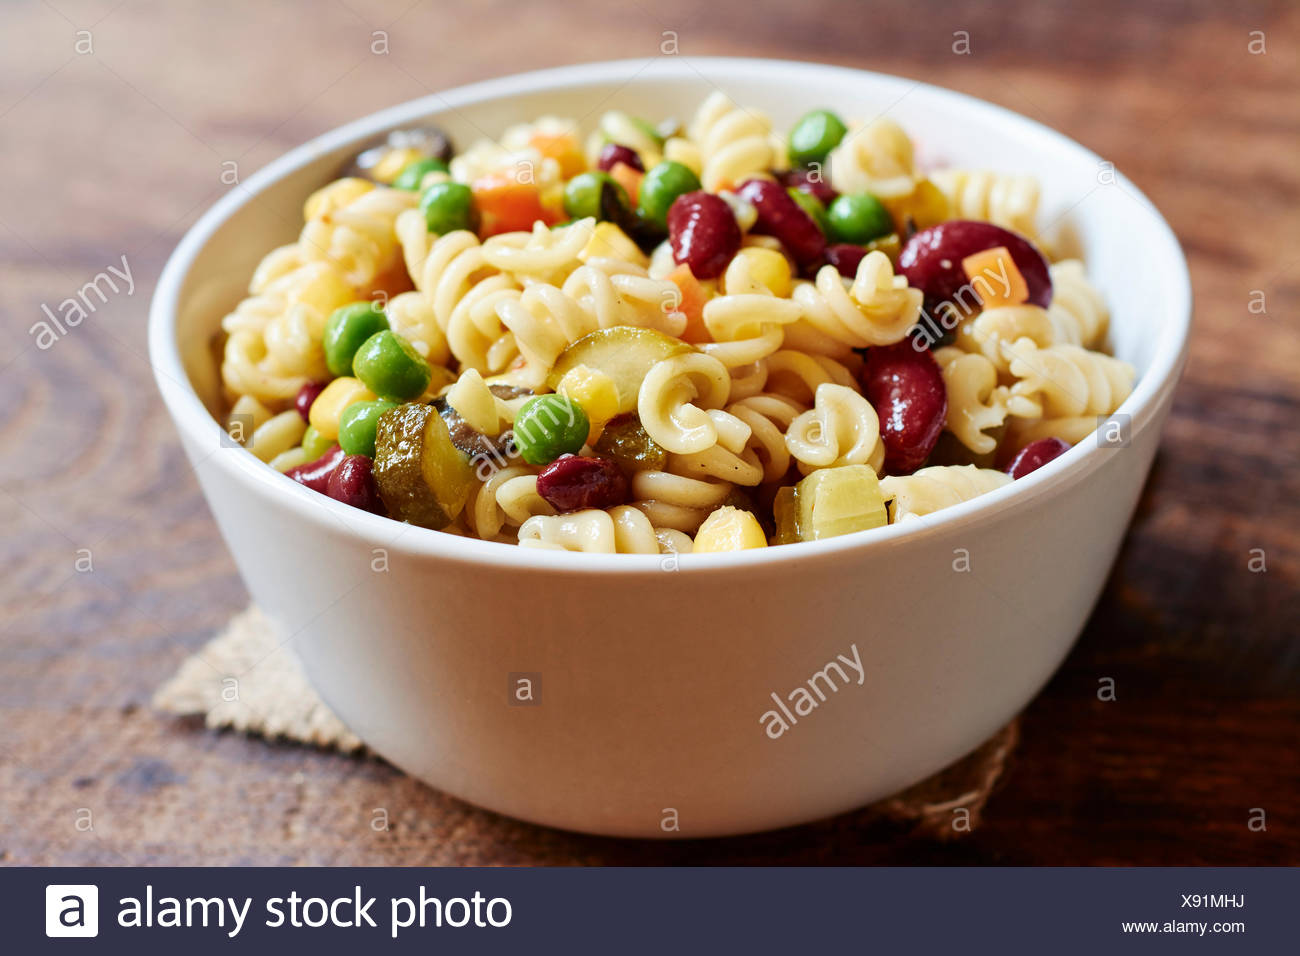 Pasta Salad With Fusilli Pasta Kidney Beans Corn Carrots Peas Pickles And Black Olives Stock Photo Alamy